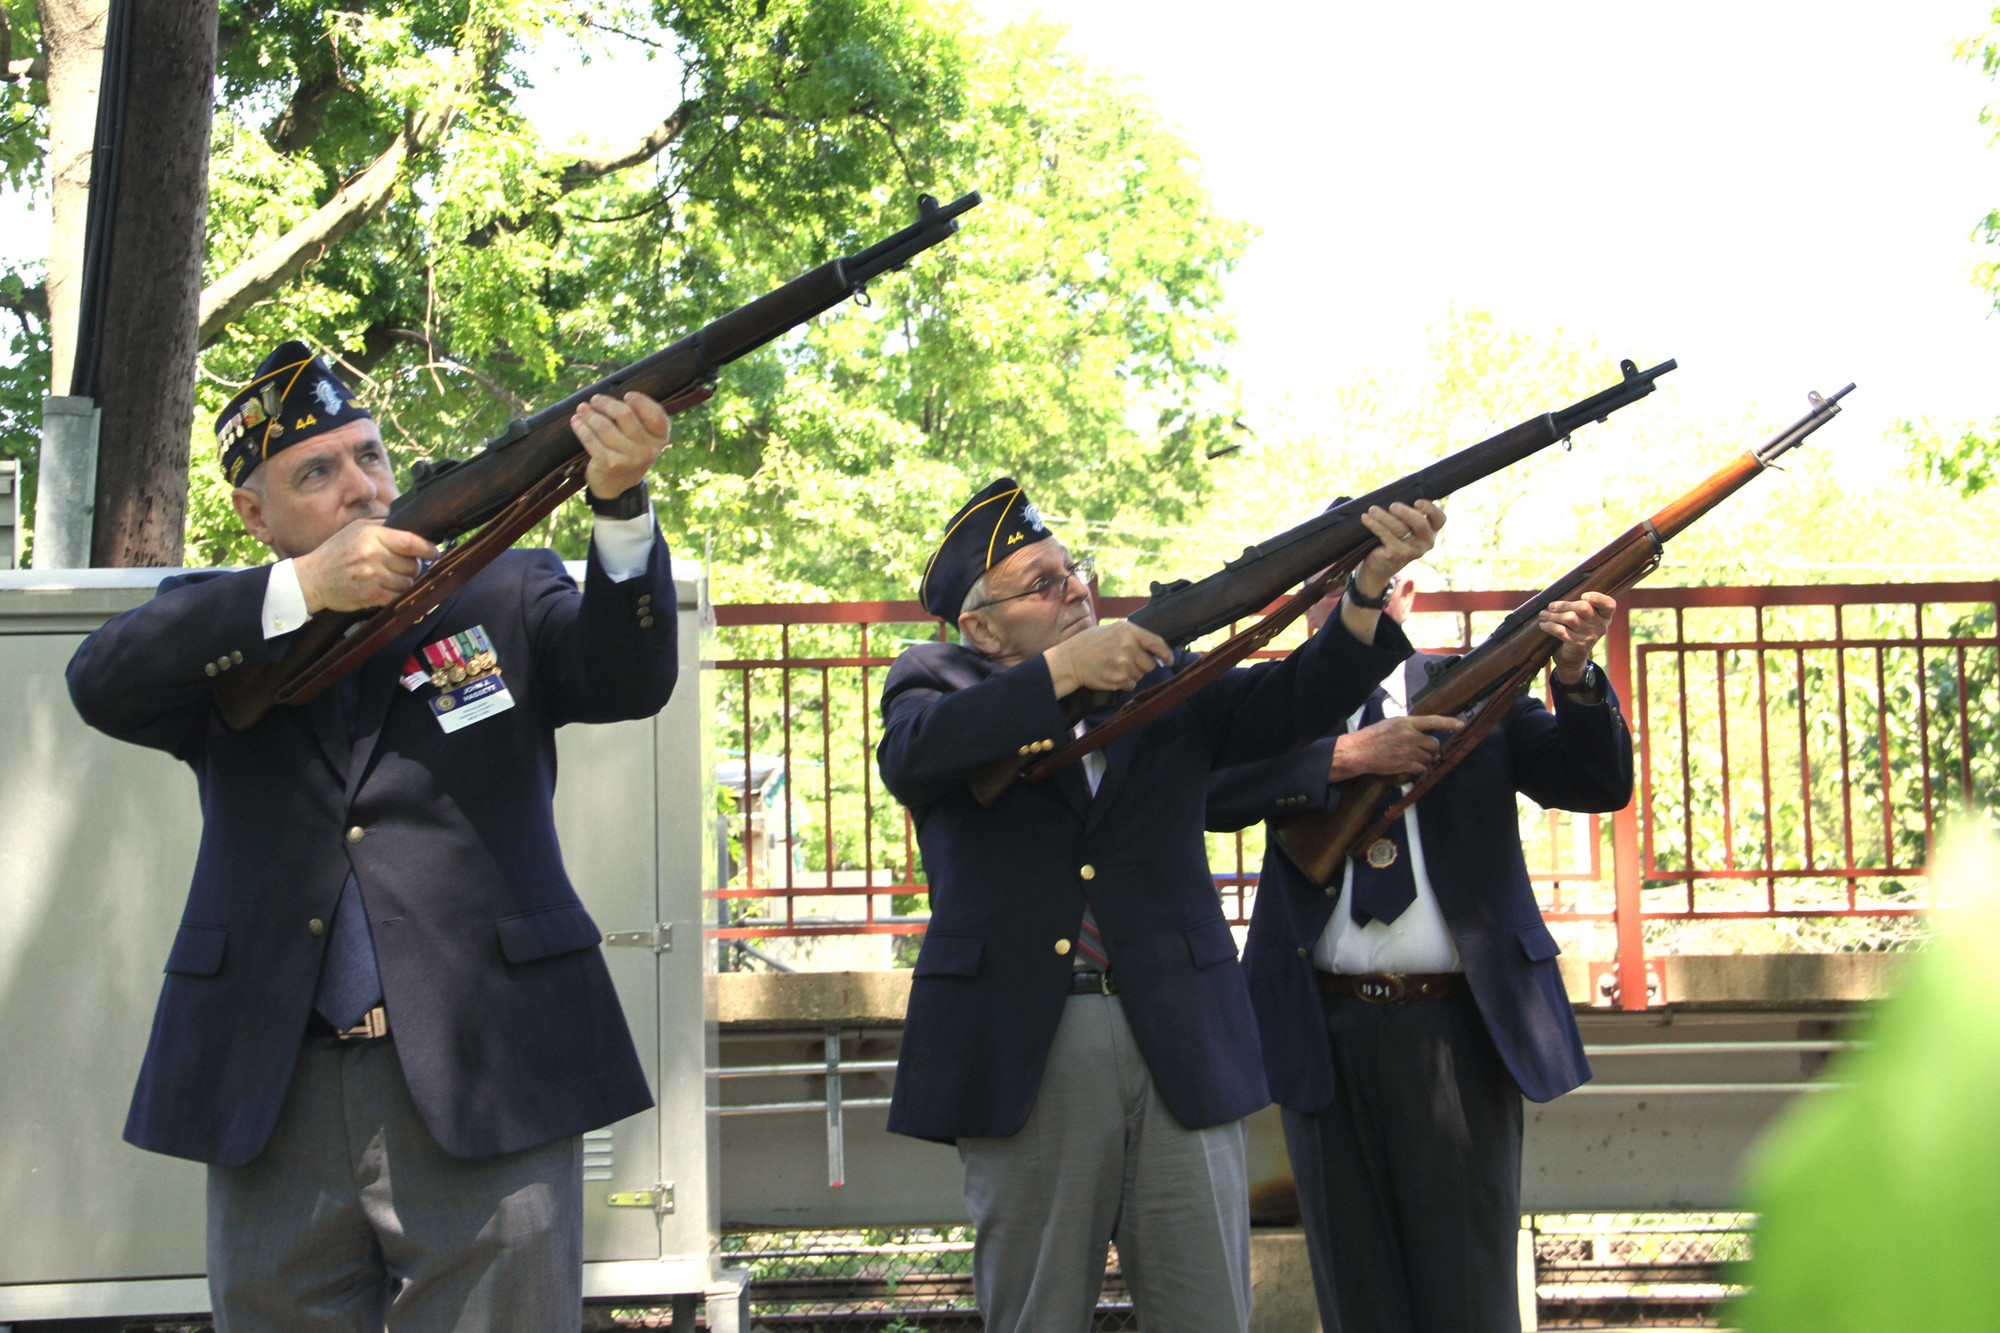 Malverne vets give the gun salute.